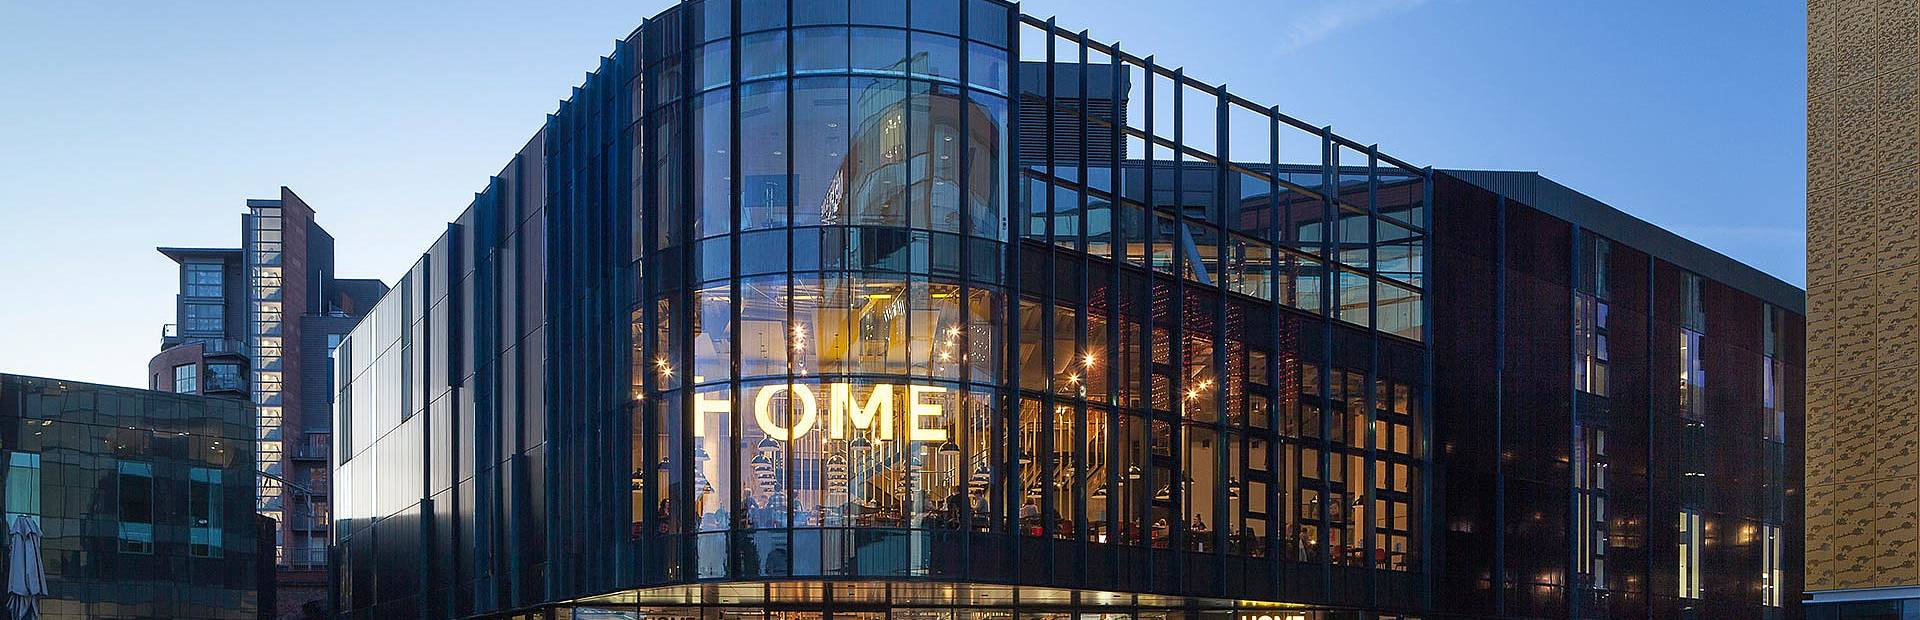 Trimo façade system on cultural centre Home in UK